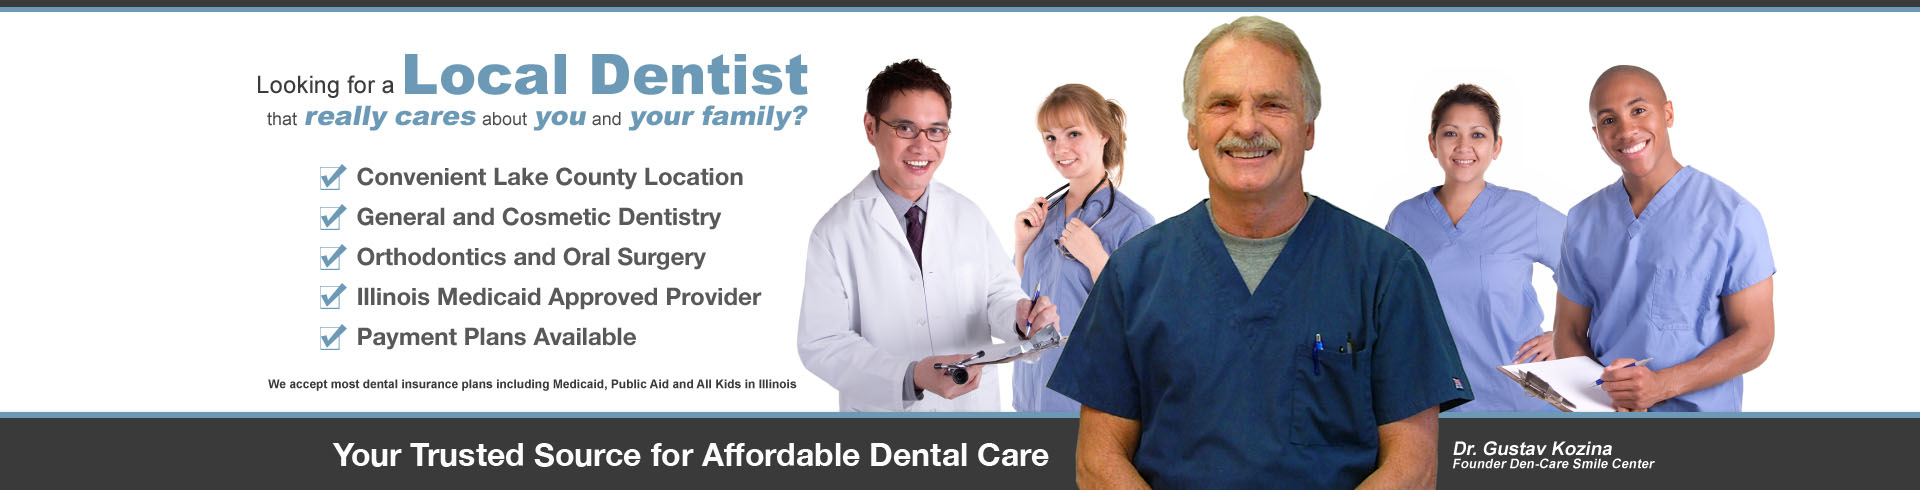 best dentist in lake county il